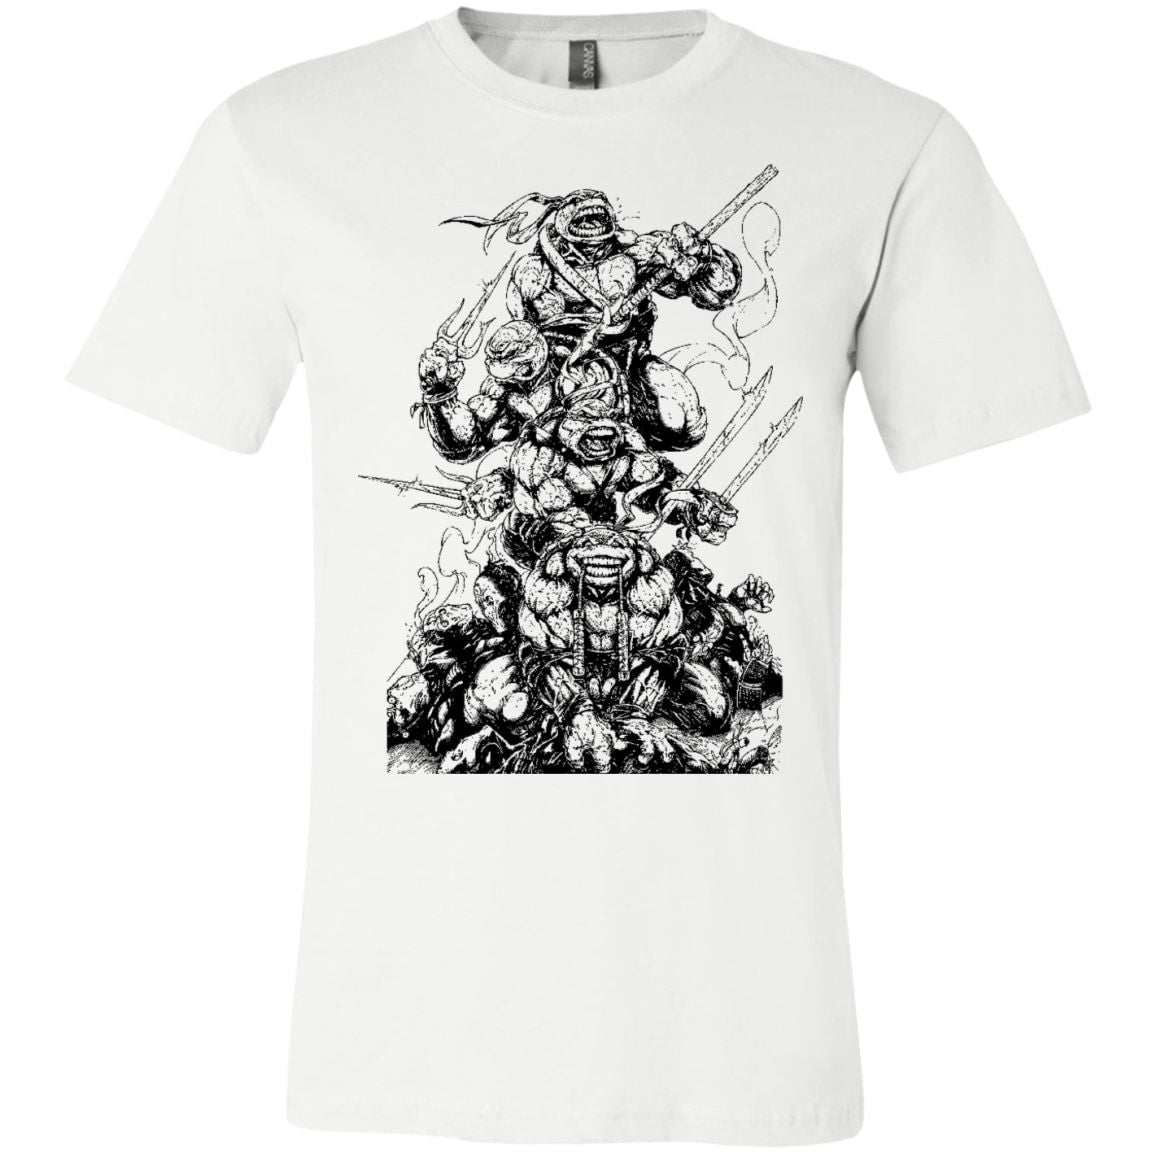 2070444b Teenage Mutant Ninja Turtles T Shirt - TMNT T Shirt - Vintage Ninja Turtles  Shirt – HipSoul